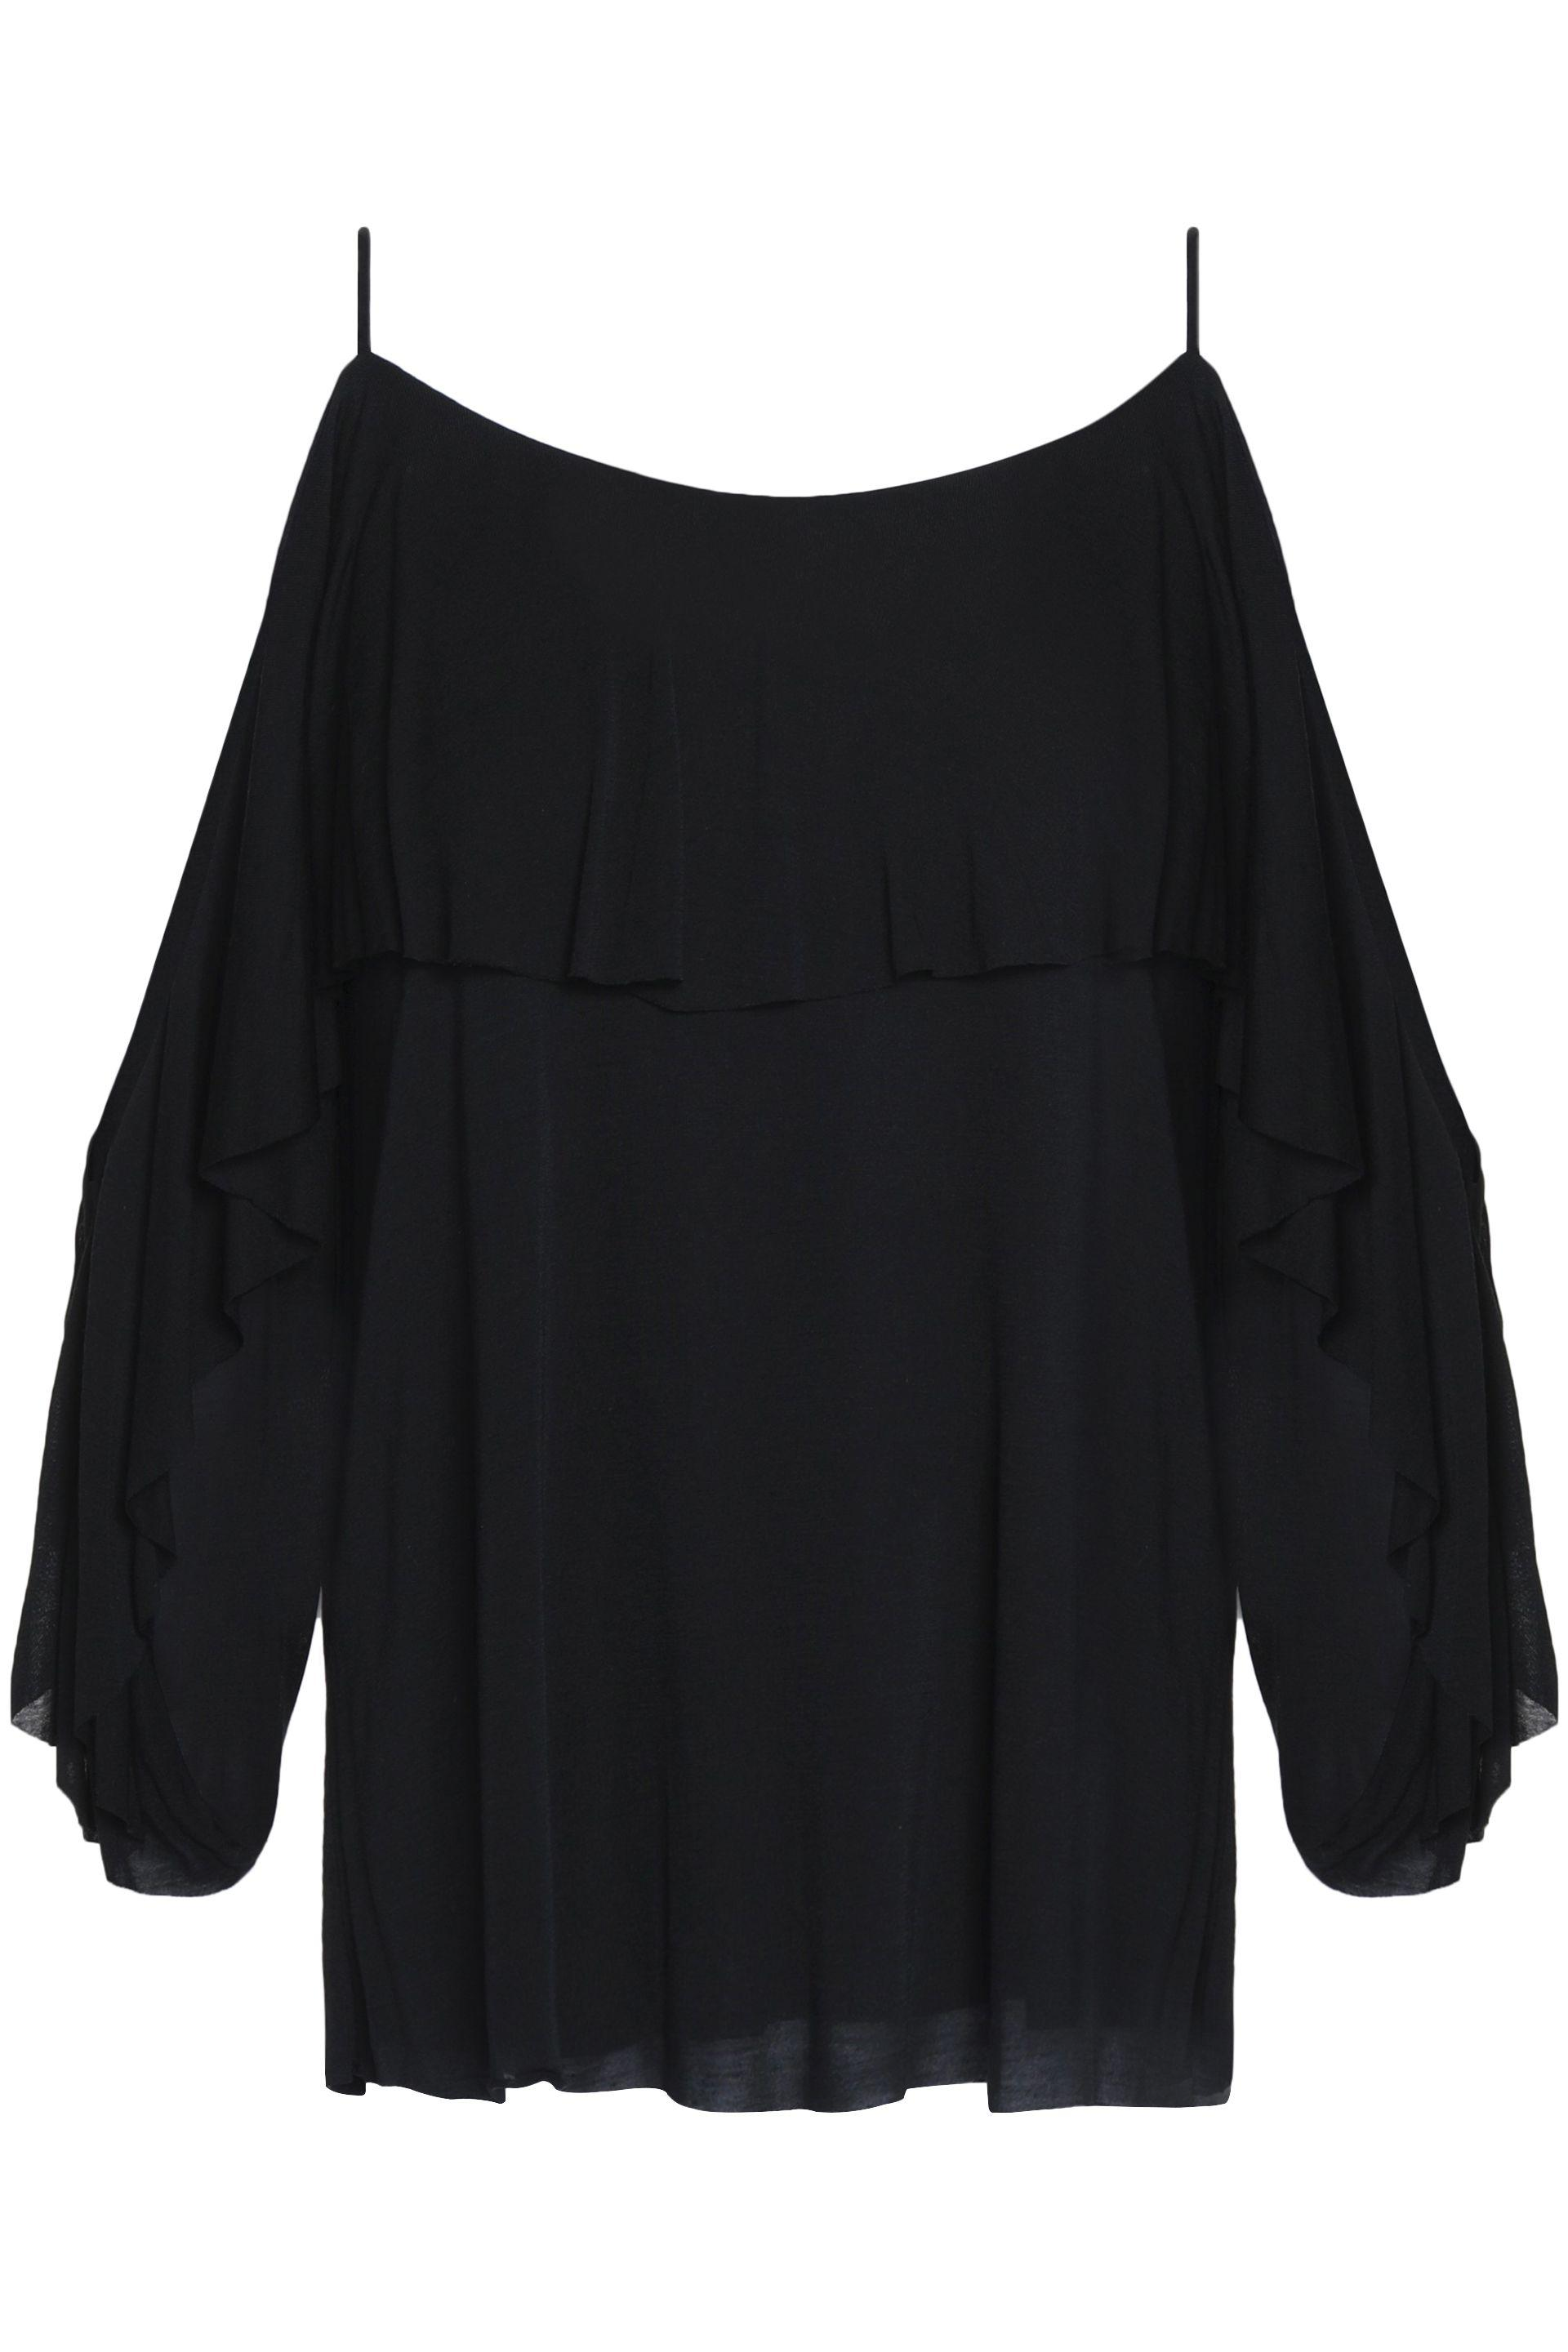 Cheap Sale Pre Order Free Shipping Low Shipping Fee Bailey 44 Woman Off-the-shoulder Smocked Crepe De Chine Top Black Size M Bailey 44 UuPUISt